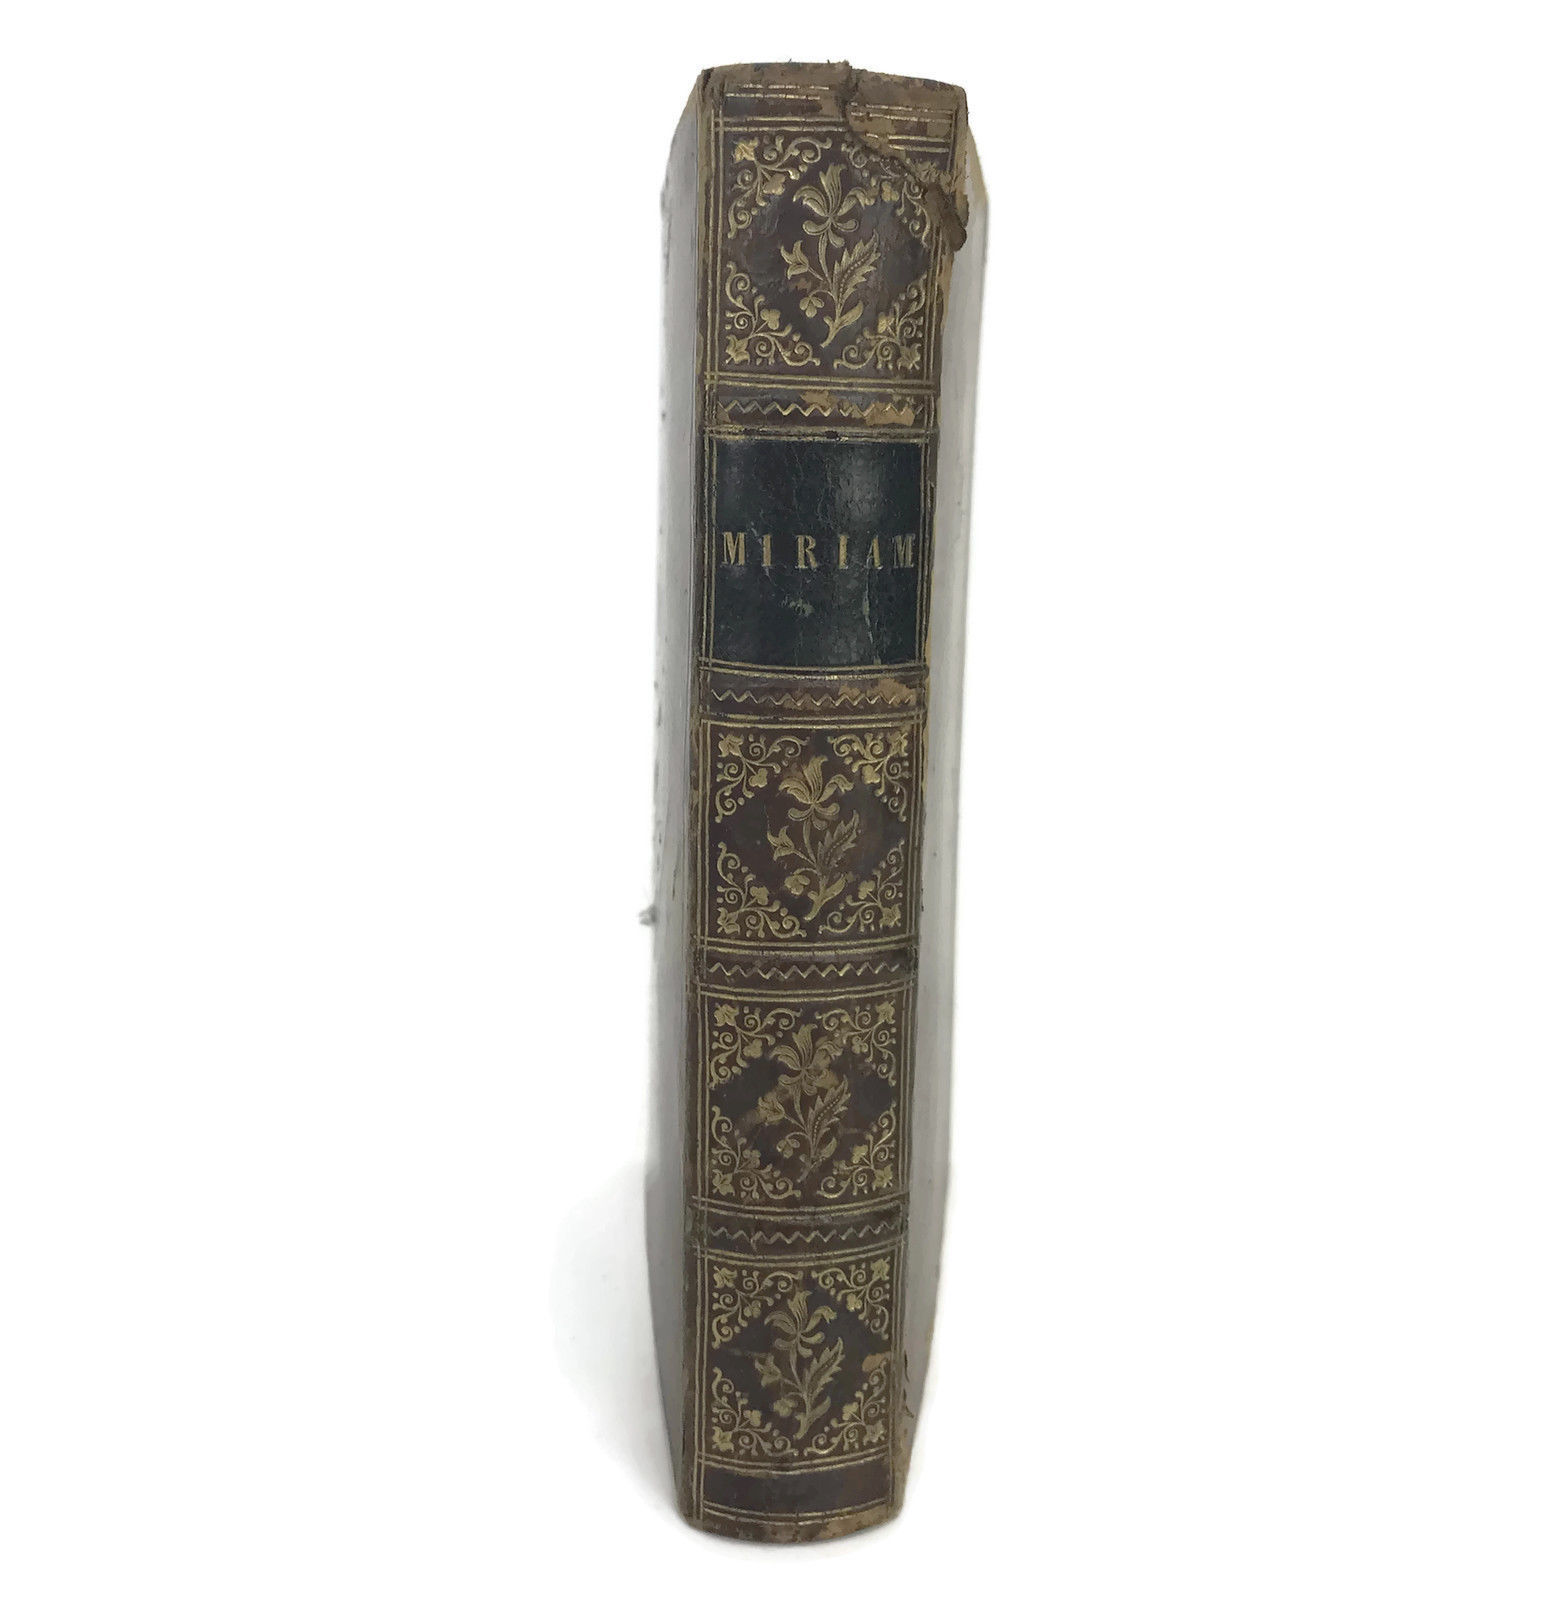 1841 Miriam The Power Of Truth A Jewish Tale 19th Century Novel Book Hatchard